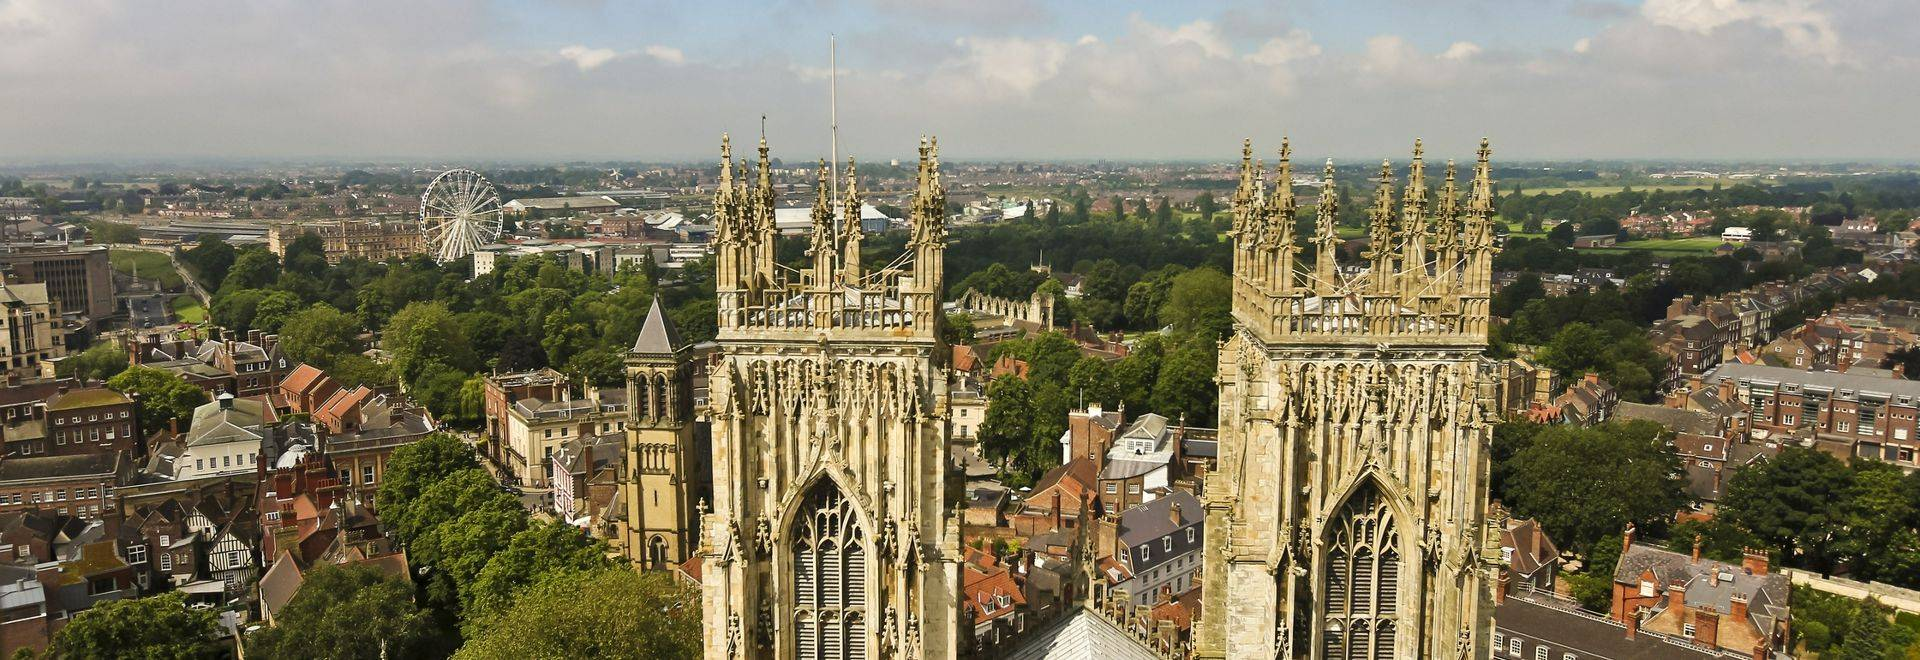 Dreamstime M 26171233 A View Of York From York Minster